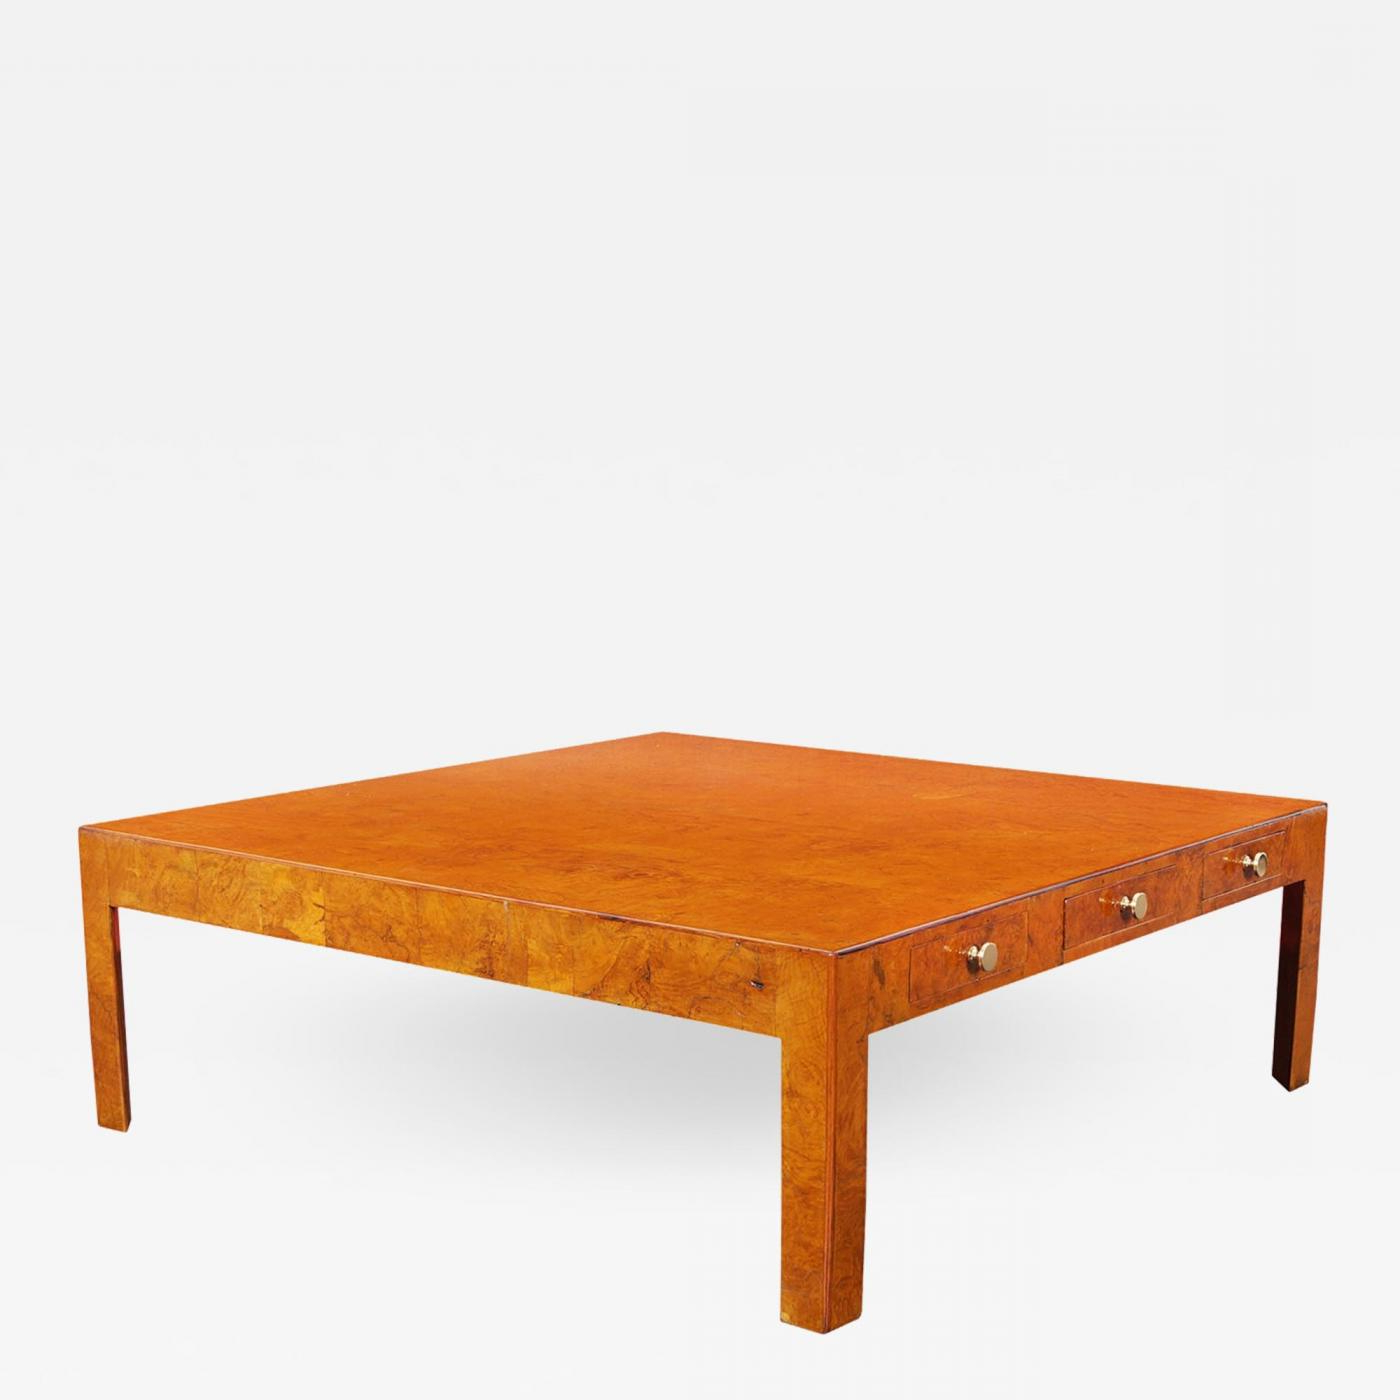 Cannell & Chaffin – Vintage Italian Burl Wood Coffee Table Pertaining To 2019 Vintage Wood Coffee Tables (View 19 of 20)